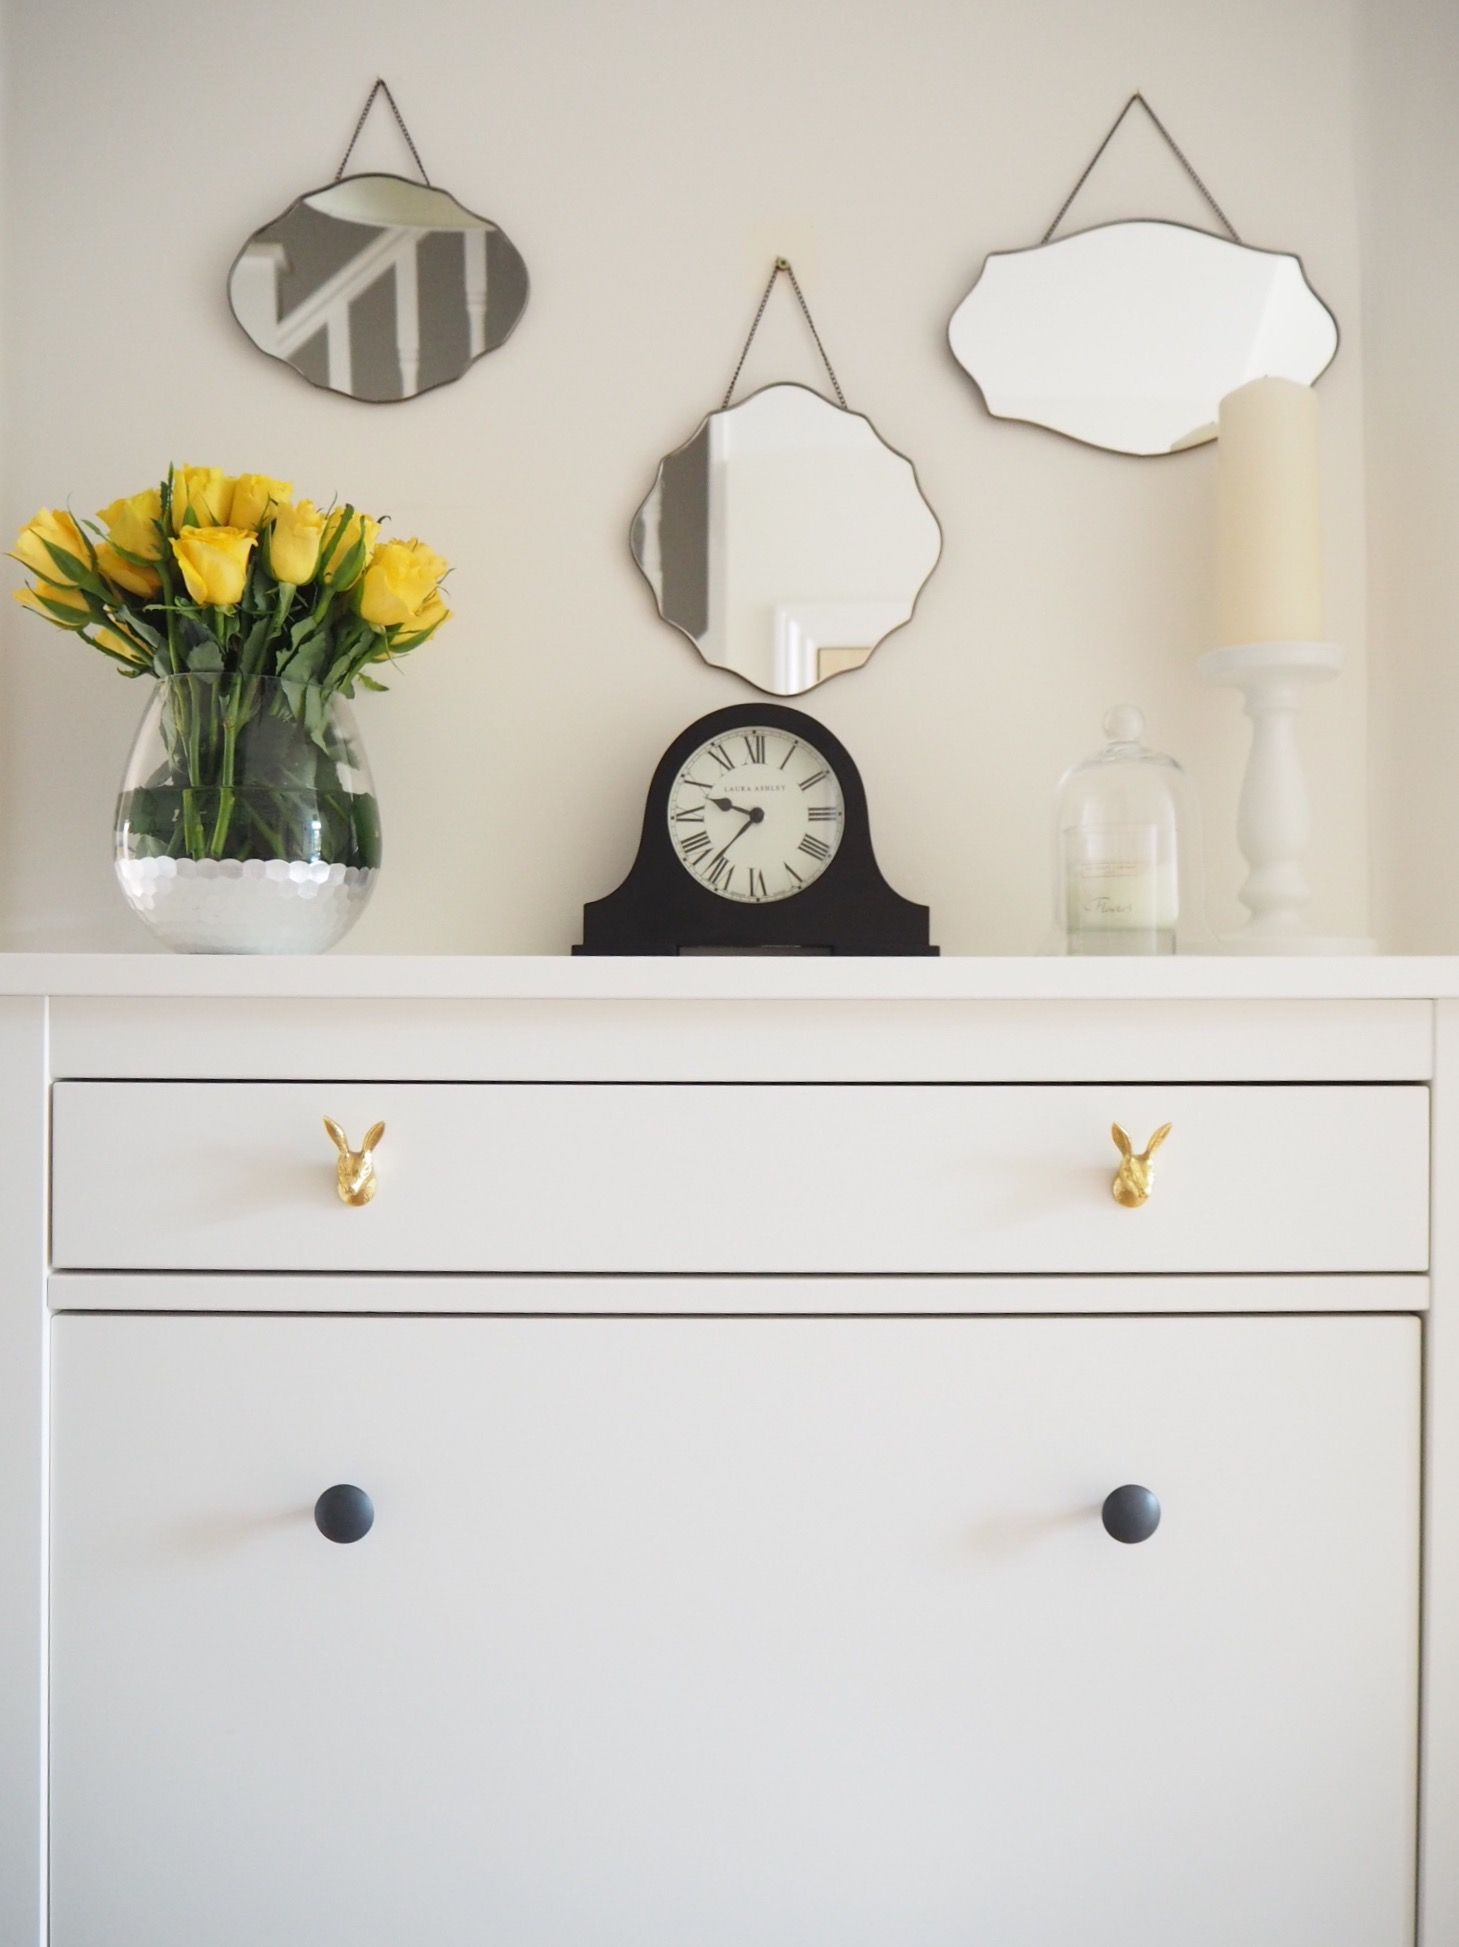 Ikea Hack Replace The Drawer Handles On An Hemnes Shoe Cupboard With Luxurious Looking Gold Pulls To Give It A Luxe Look See More Budget Tips